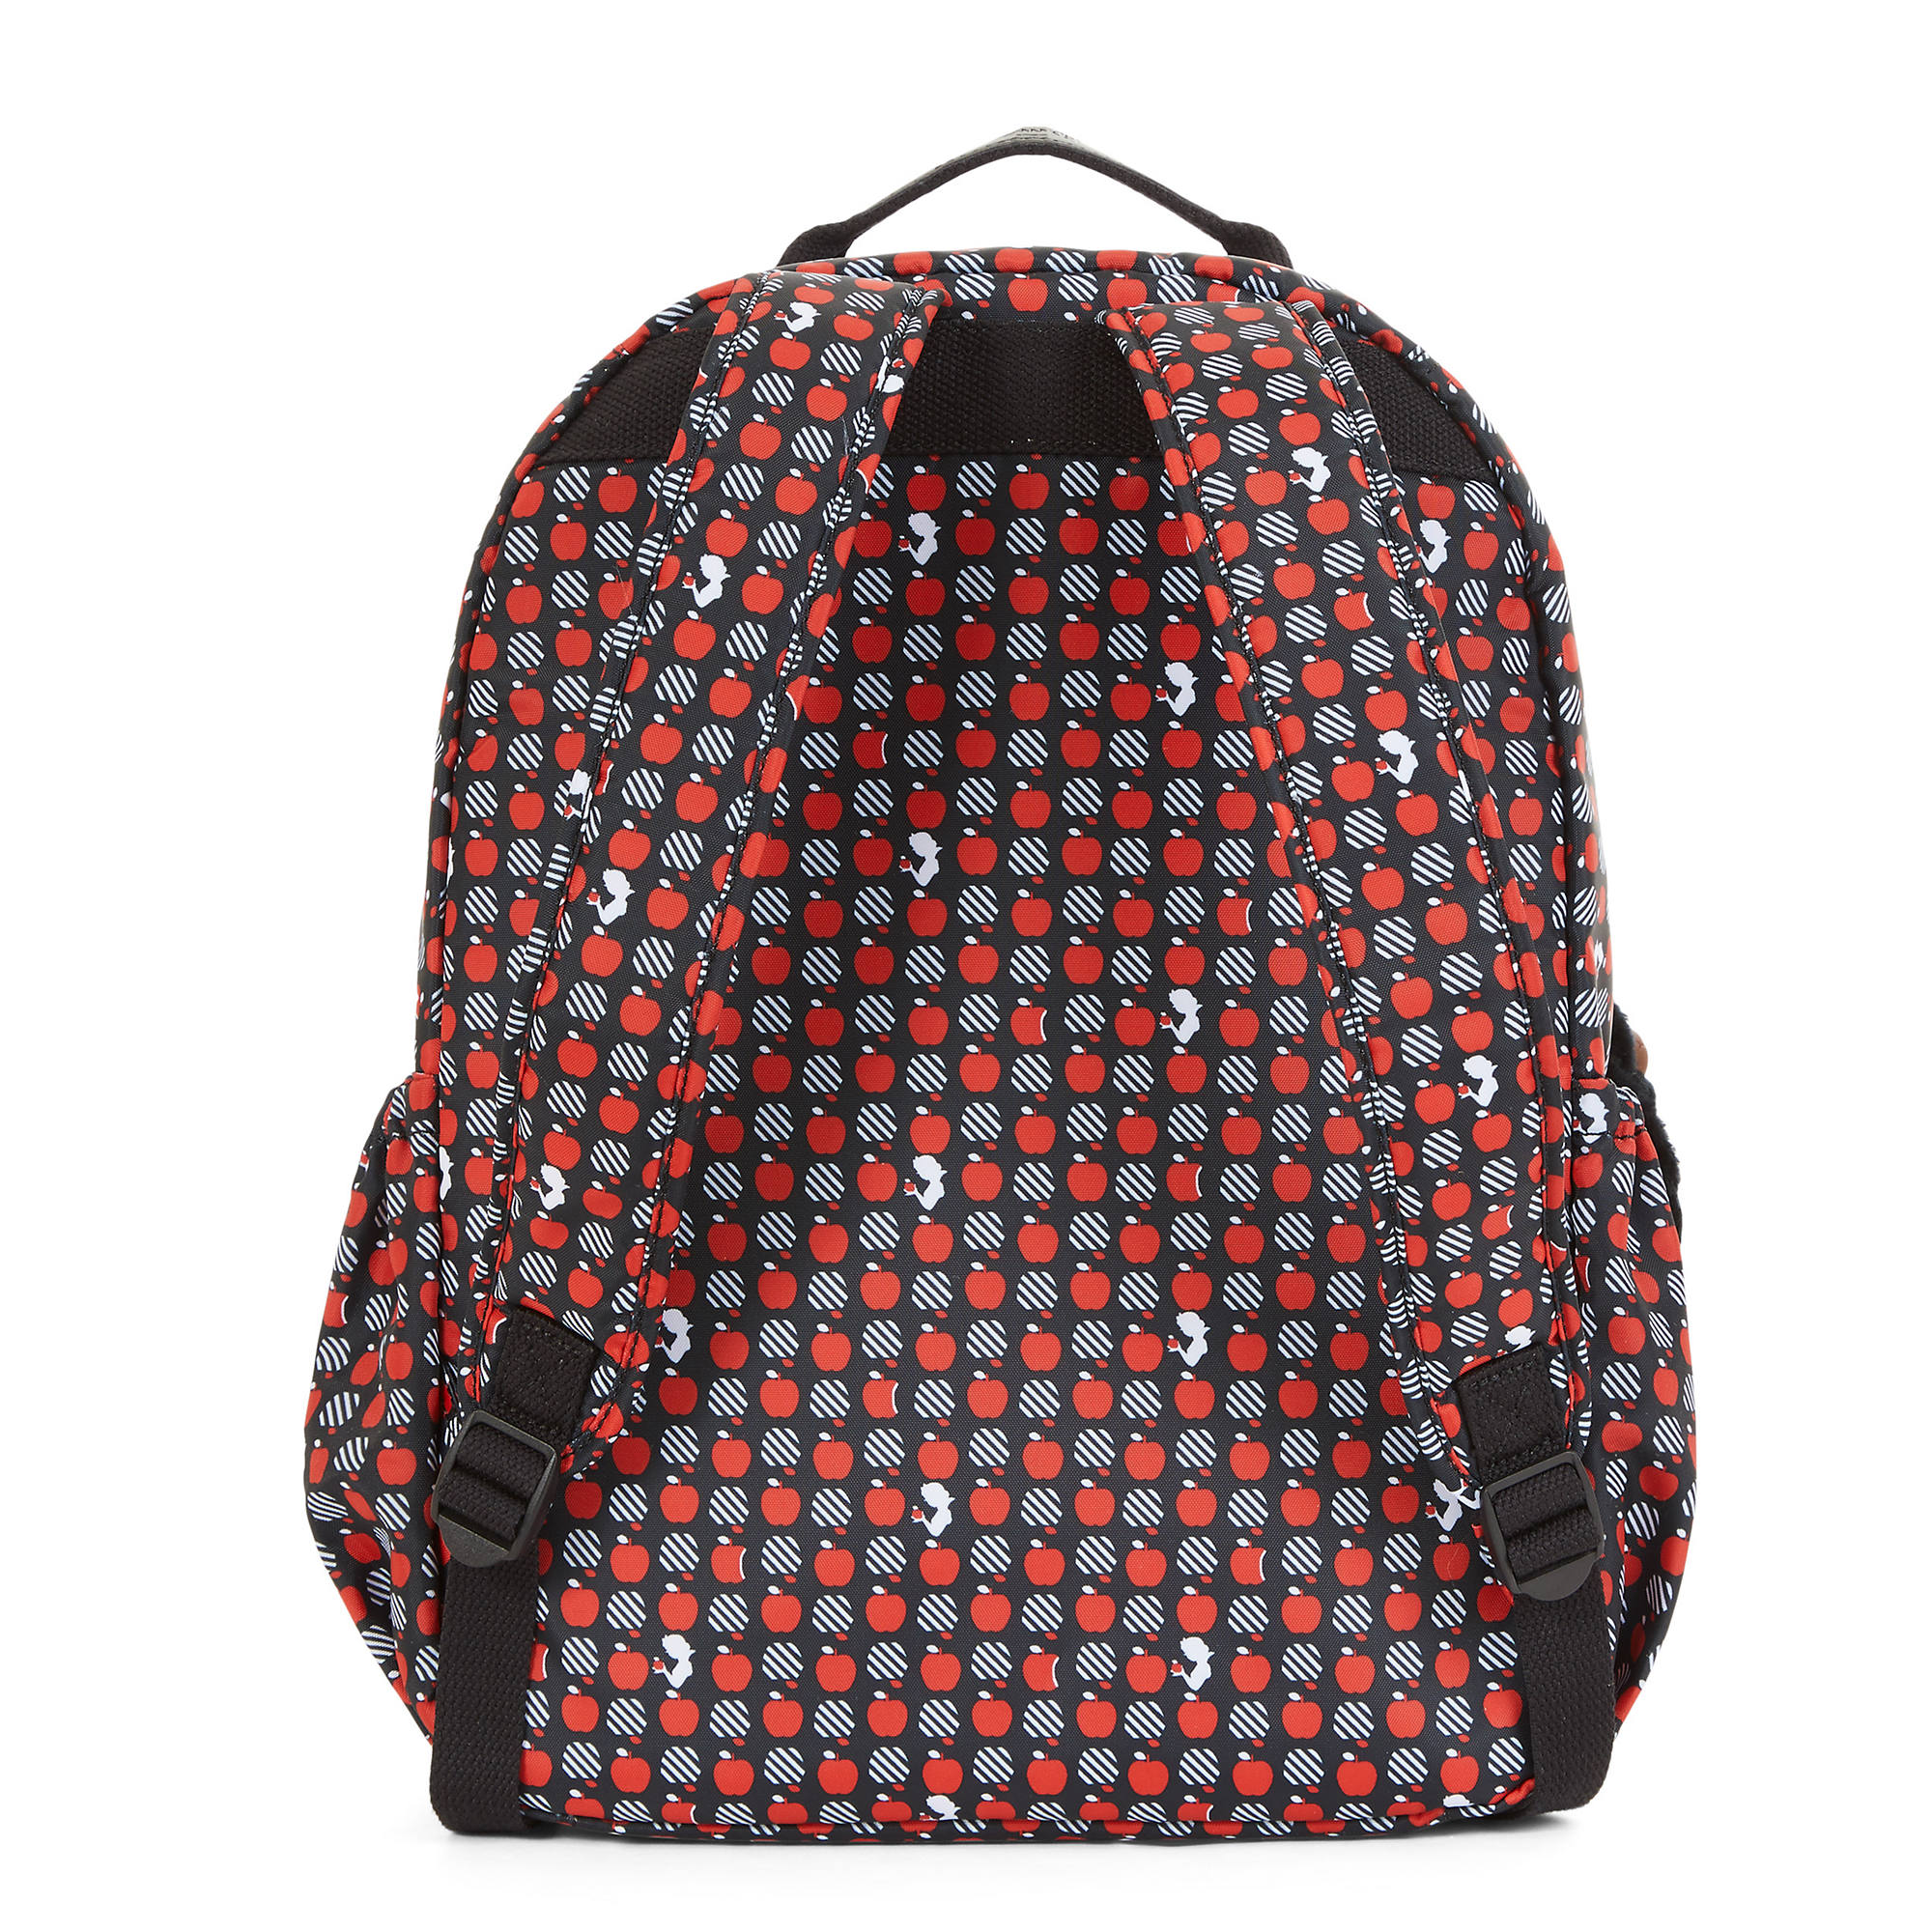 a8e557874 Disney's Snow White Seoul Large Printed Laptop Backpack,Active Red,large